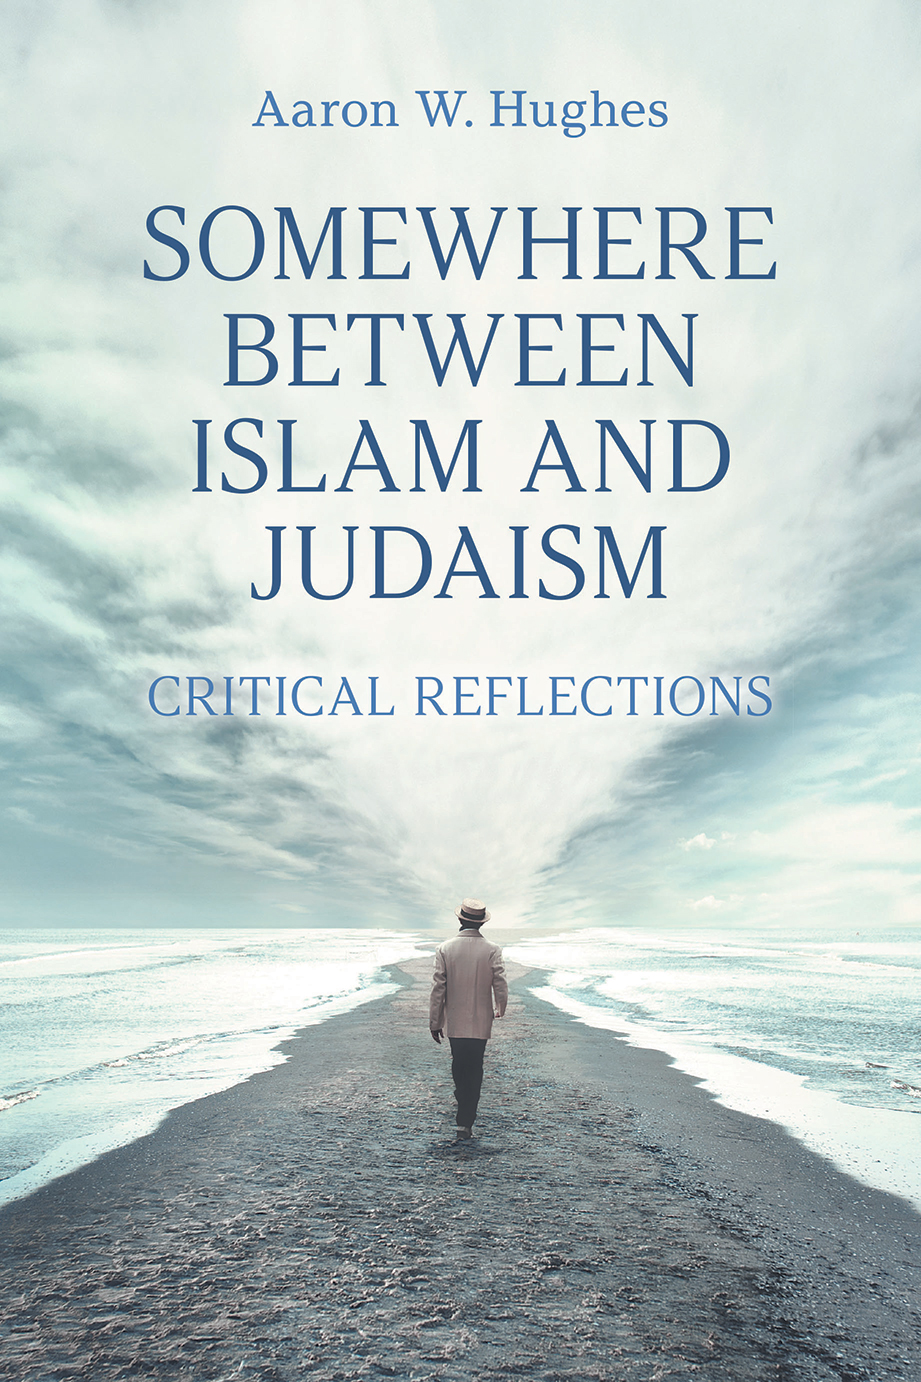 Somewhere between Islam and Judaism